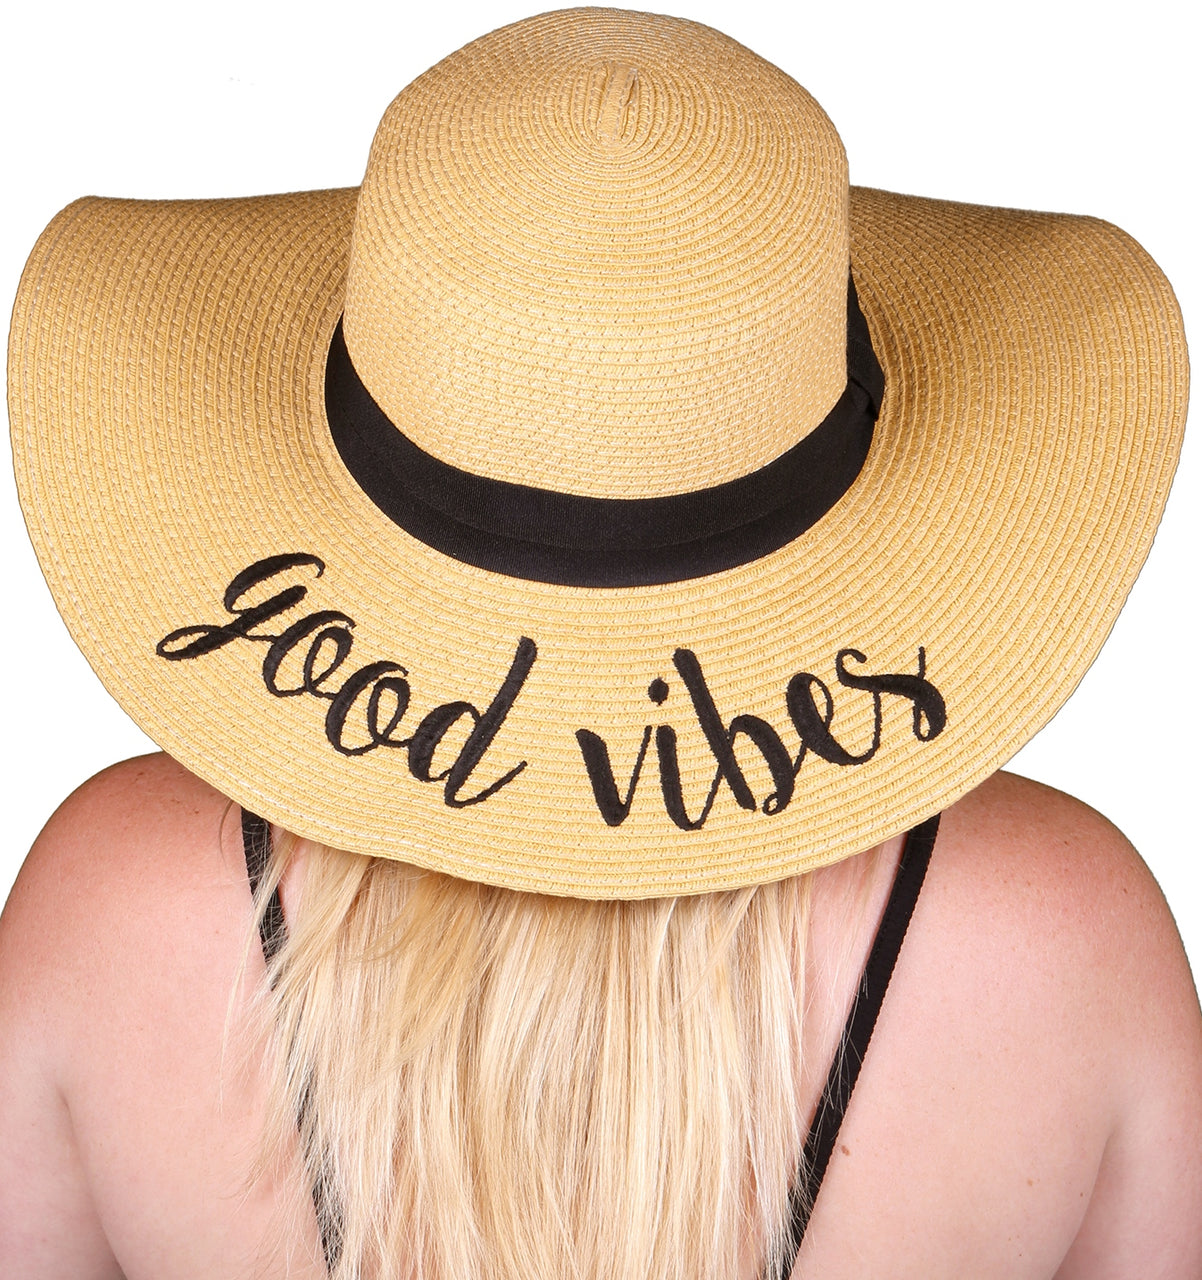 C.C Embroidered Sun Hat - Good Vibes